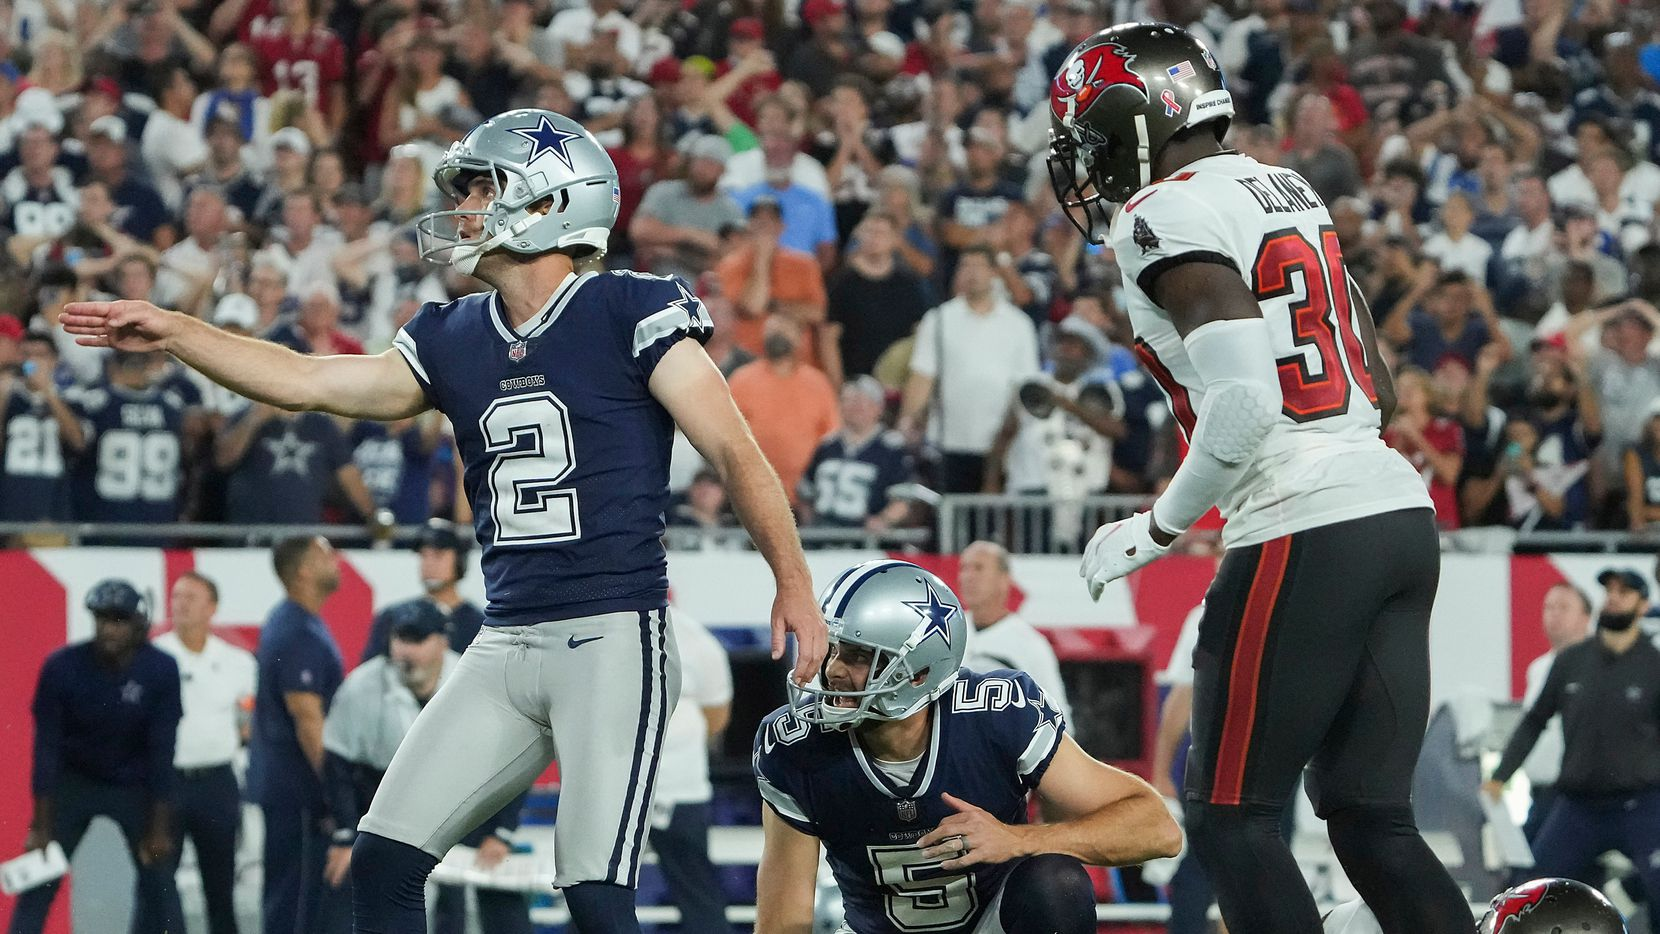 Dallas Cowboys place kicker Greg Zuerlein (2) watches a field goal that gave the Cowboys a brief 29-28 lead in the final minutes of a loss to the Tampa Bay Buccaneers in an NFL football game at Raymond James Stadium on Thursday, Sept. 9, 2021, in Tampa, Fla. The  Buccaneers won the game 31-29. (Smiley N. Pool/The Dallas Morning News)